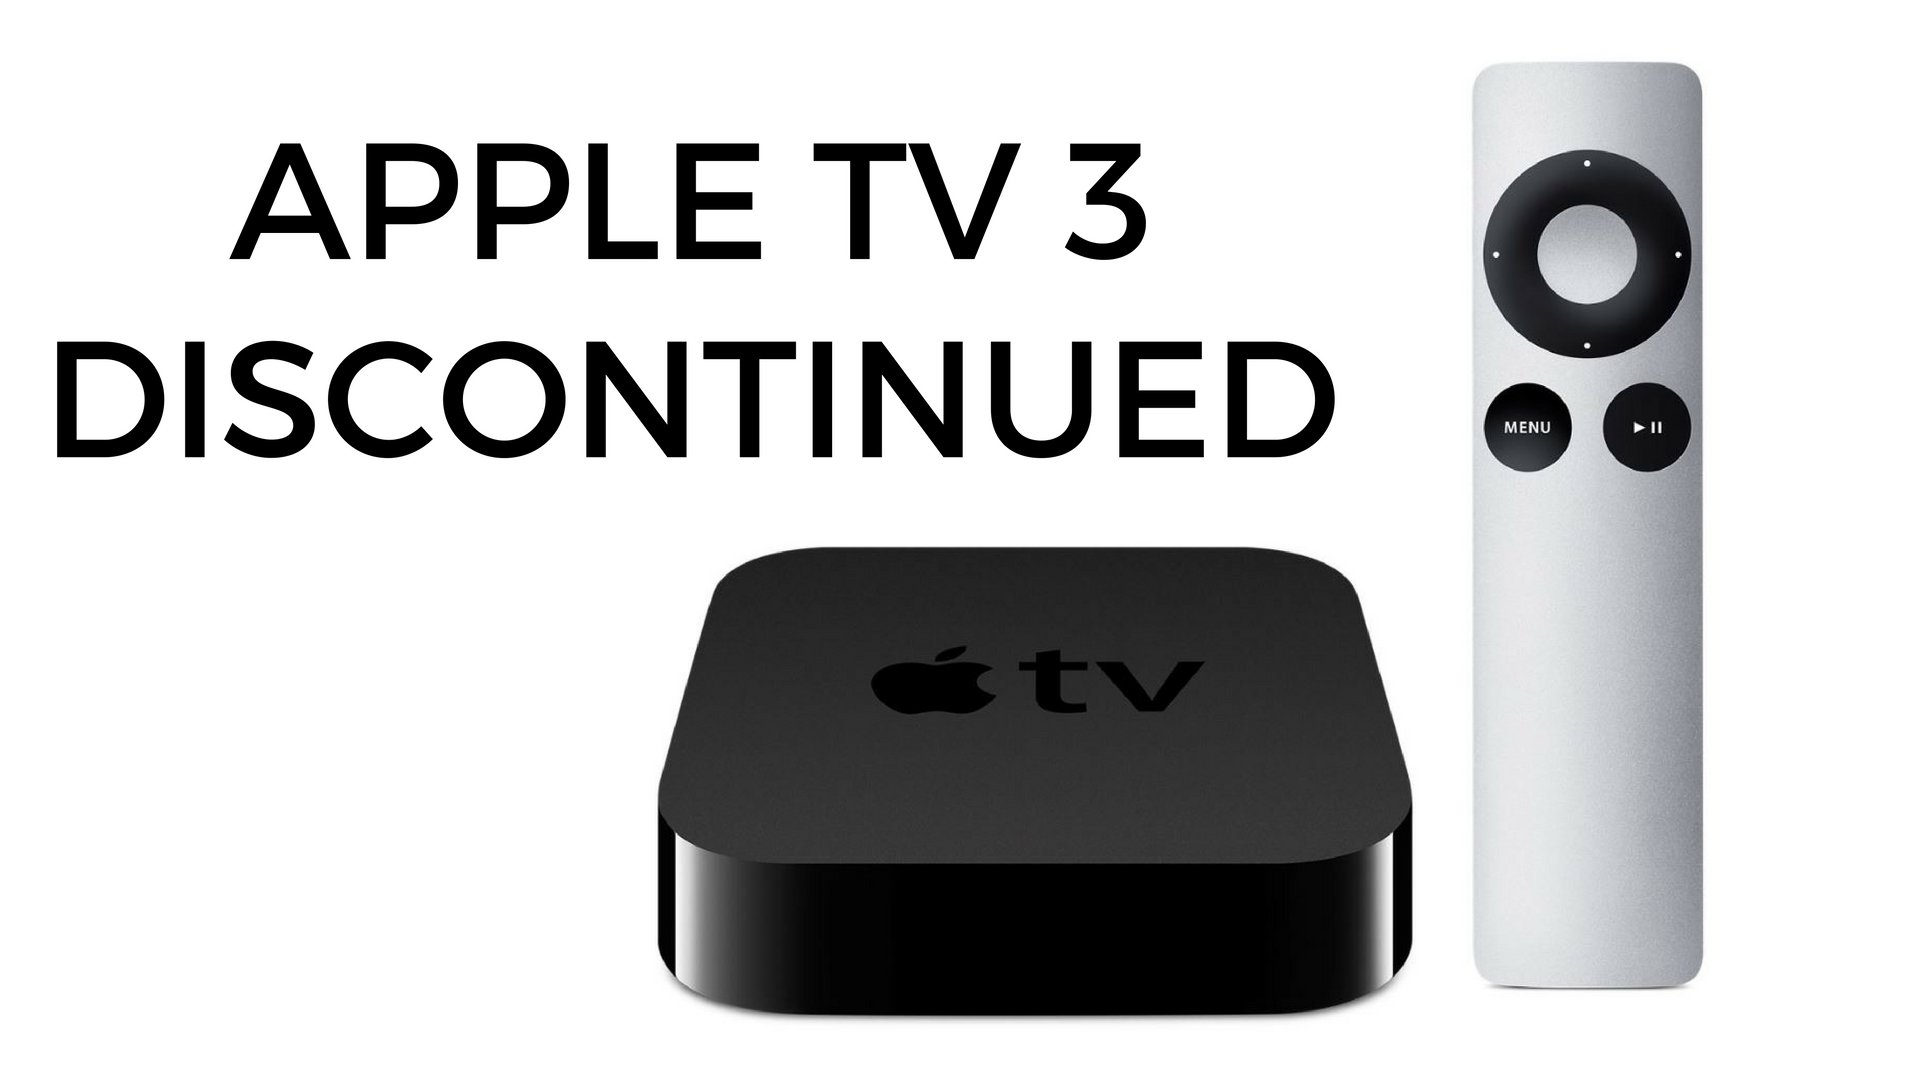 apple tv 3 discontinued no longer available on apple. Black Bedroom Furniture Sets. Home Design Ideas